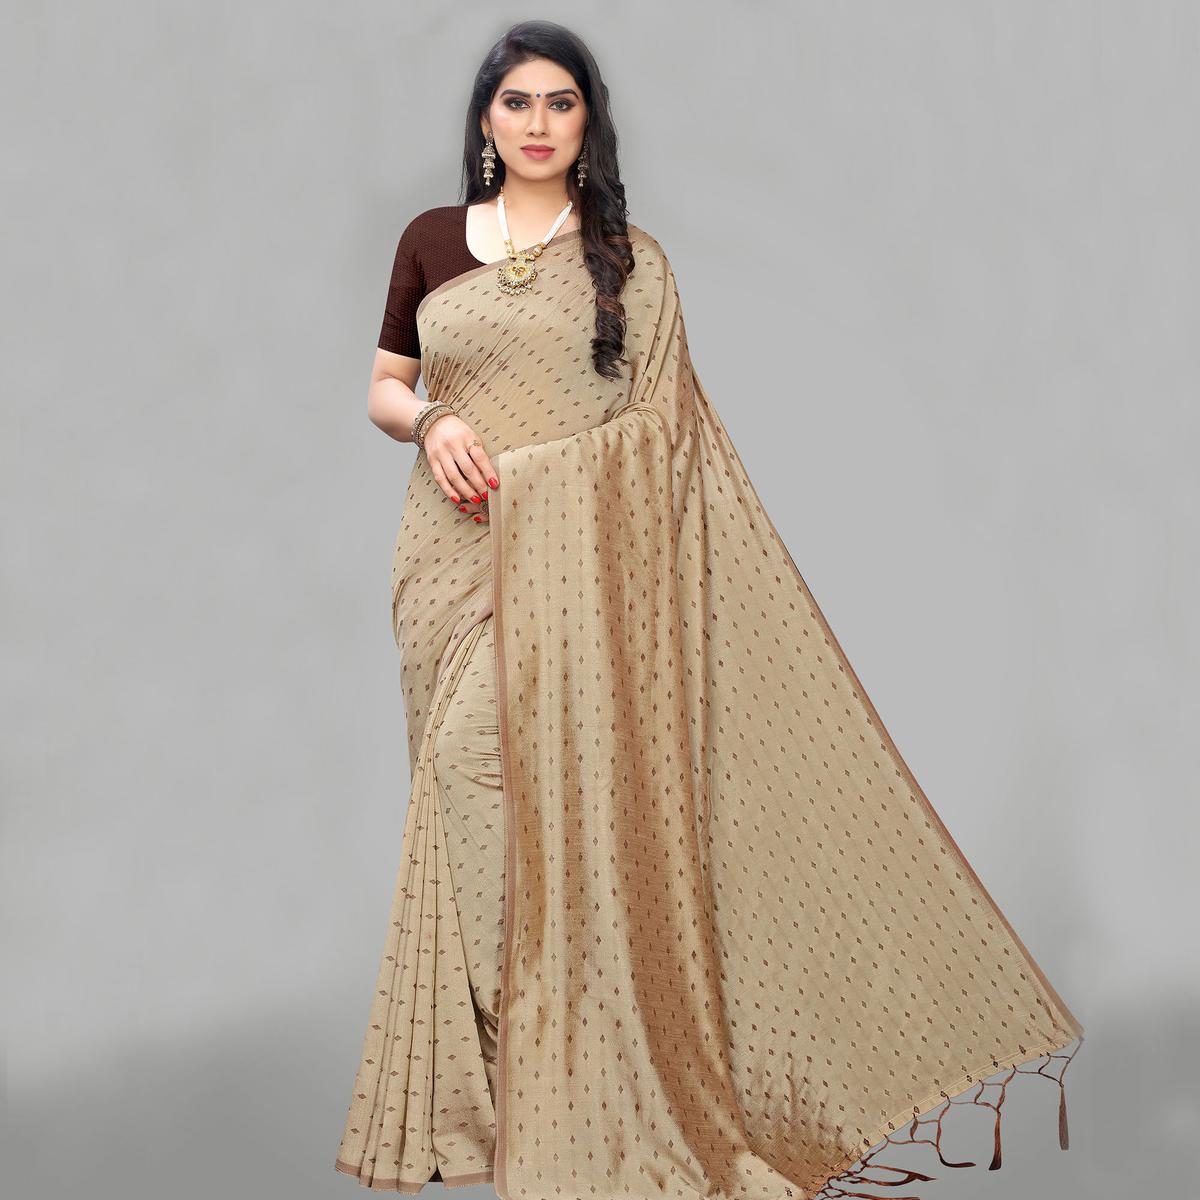 Attractive Beige Colored Party Wear Printed Silk Blend Saree With Tassels